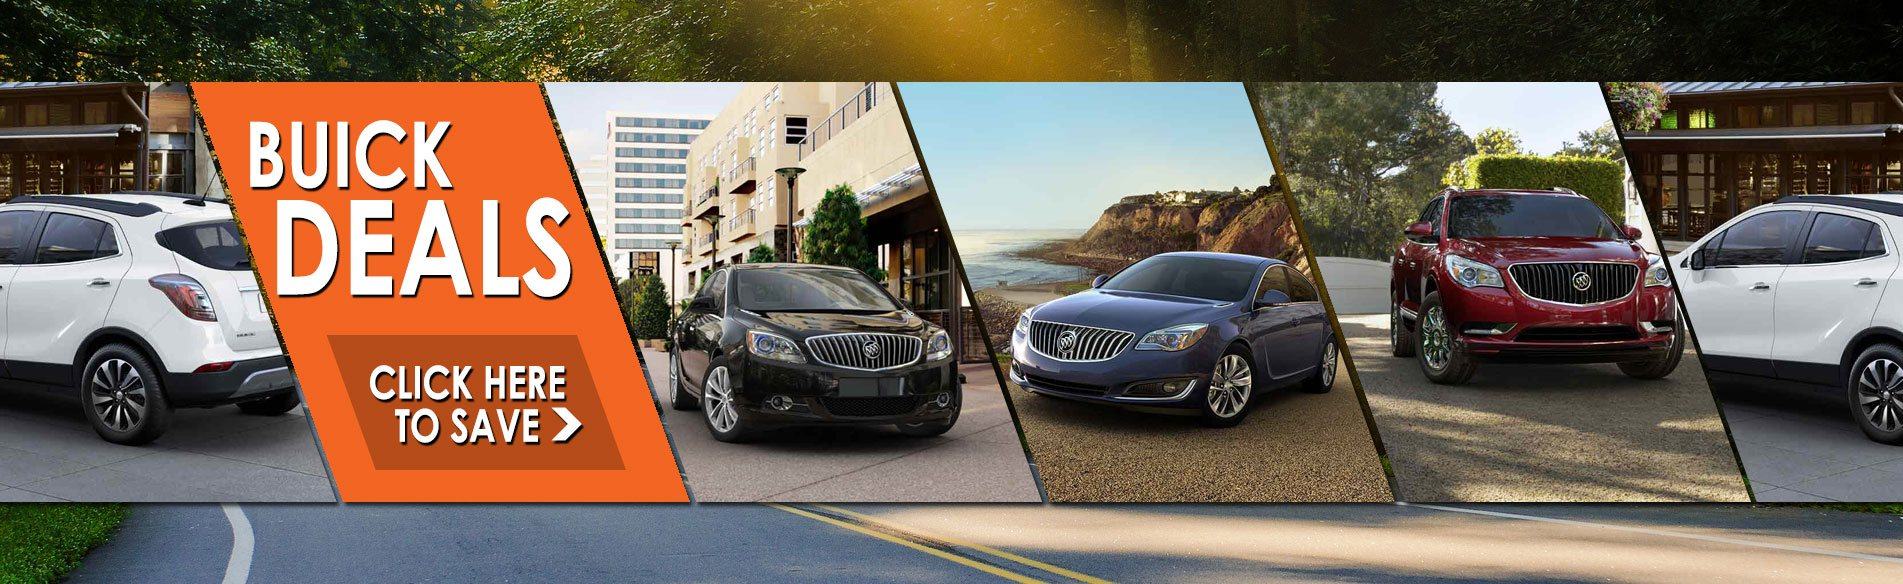 Great deals on new Buick cars and SUVs in Georgetown Ontario at Georgetown Chevrolet